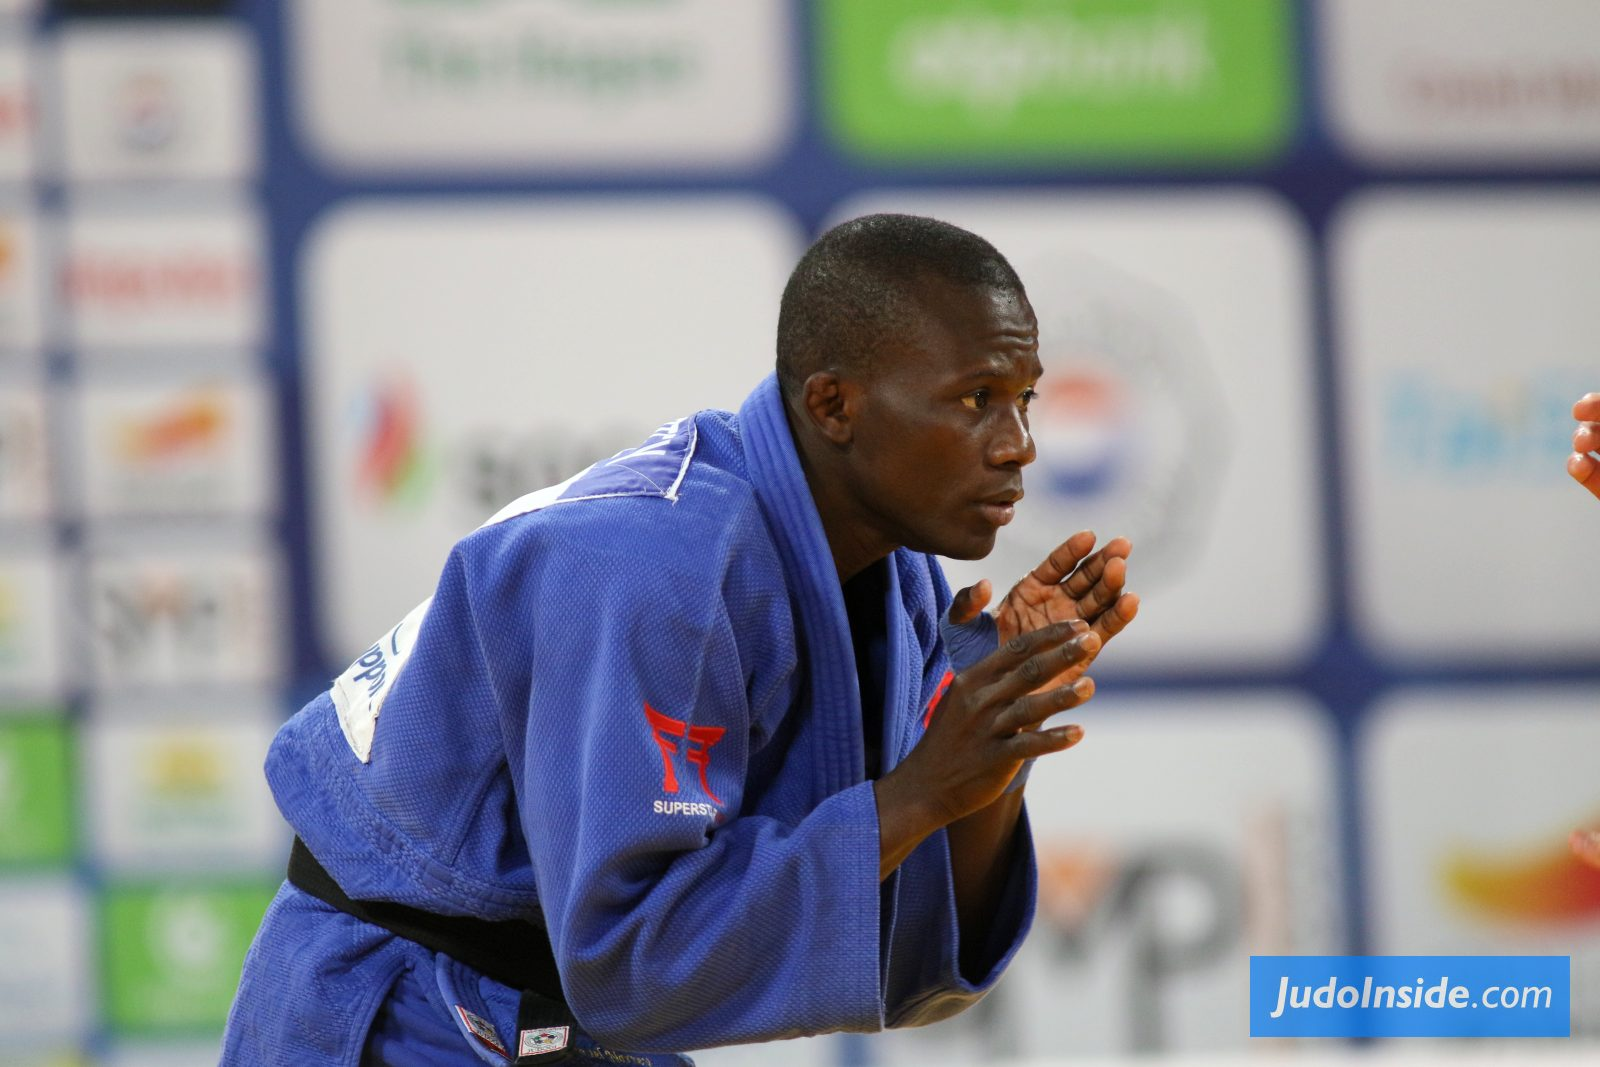 Four description